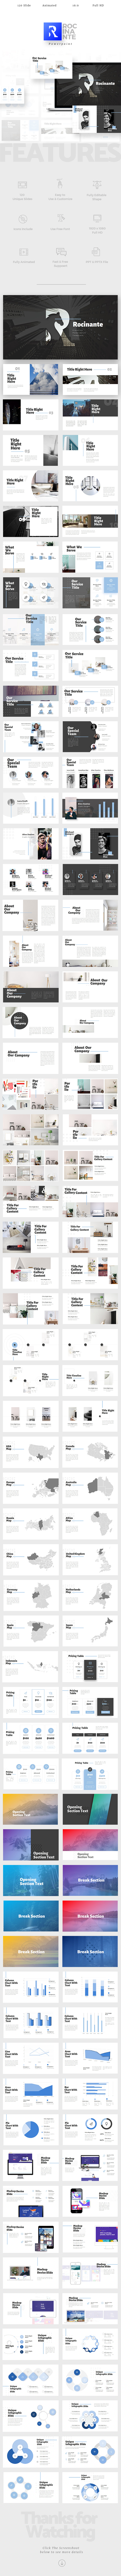 Rocinante Clean PowerPoint Template